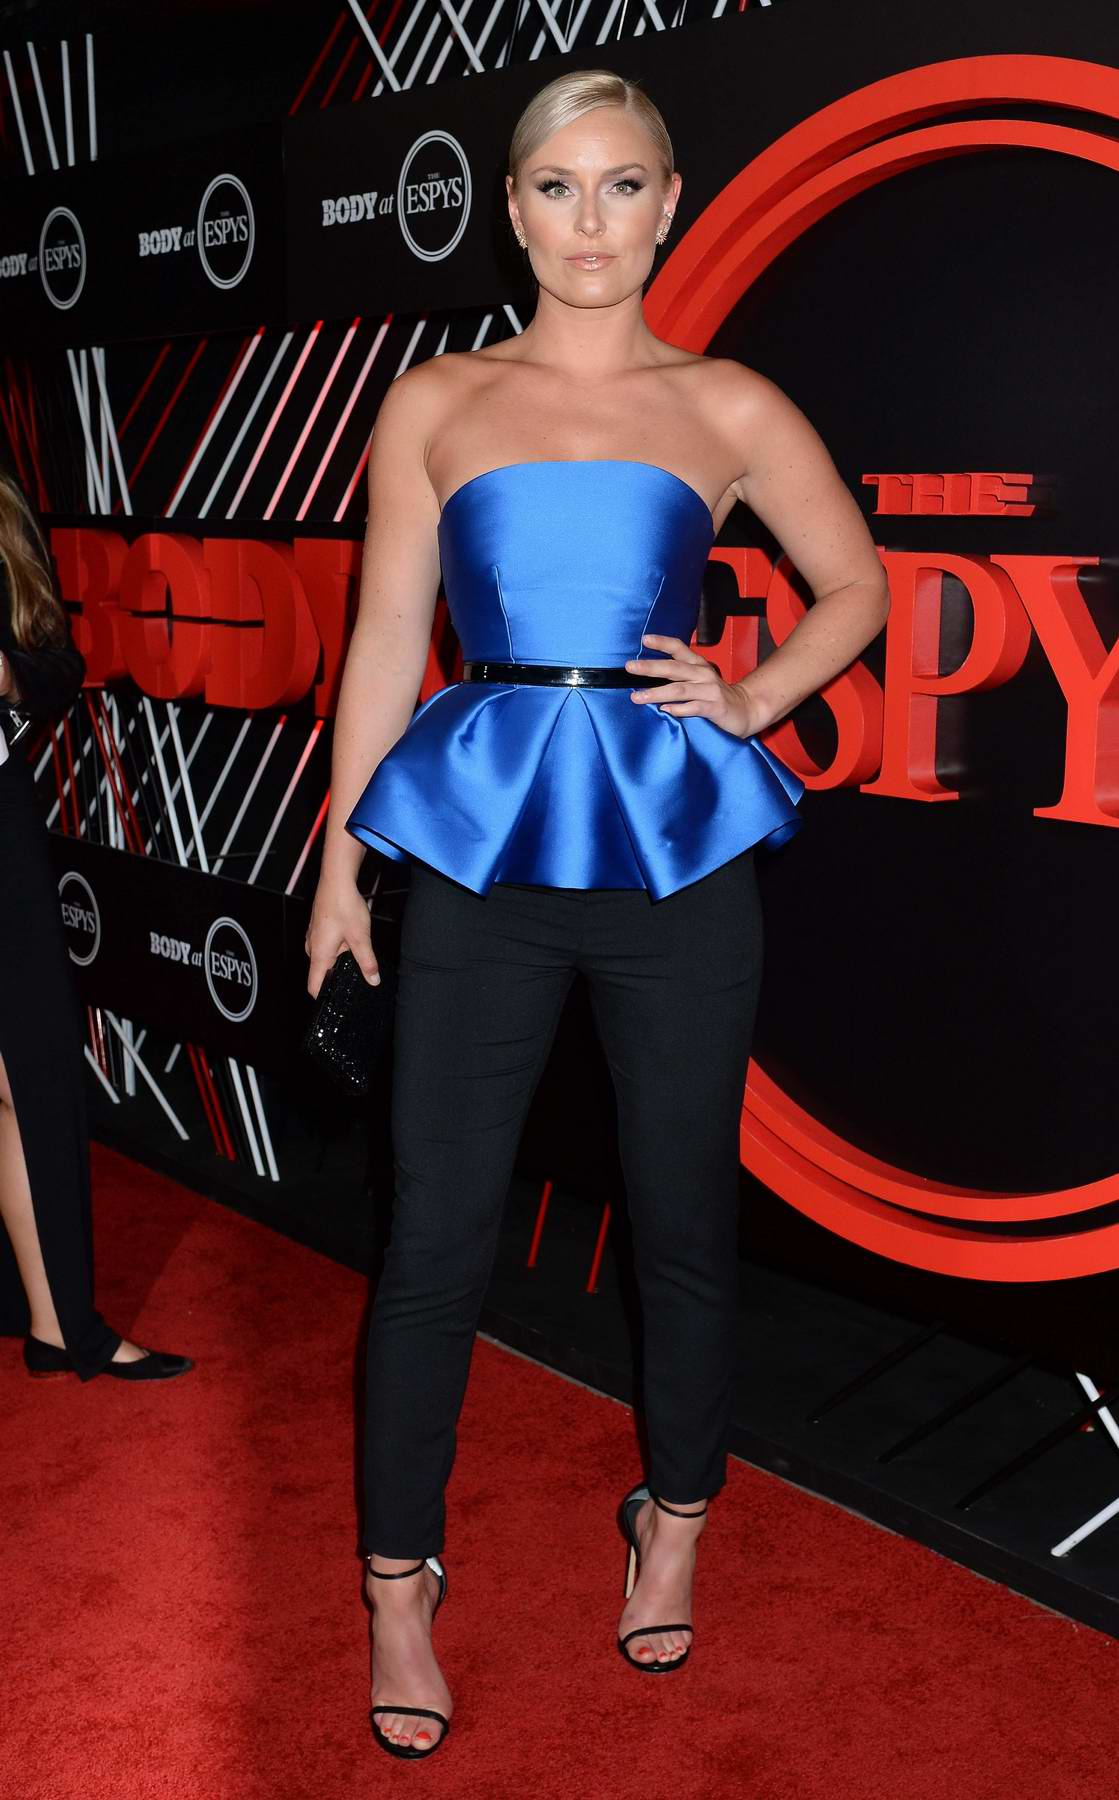 Lindsey Vonn attends BODY at ESPYS Party in Hollywood, CA